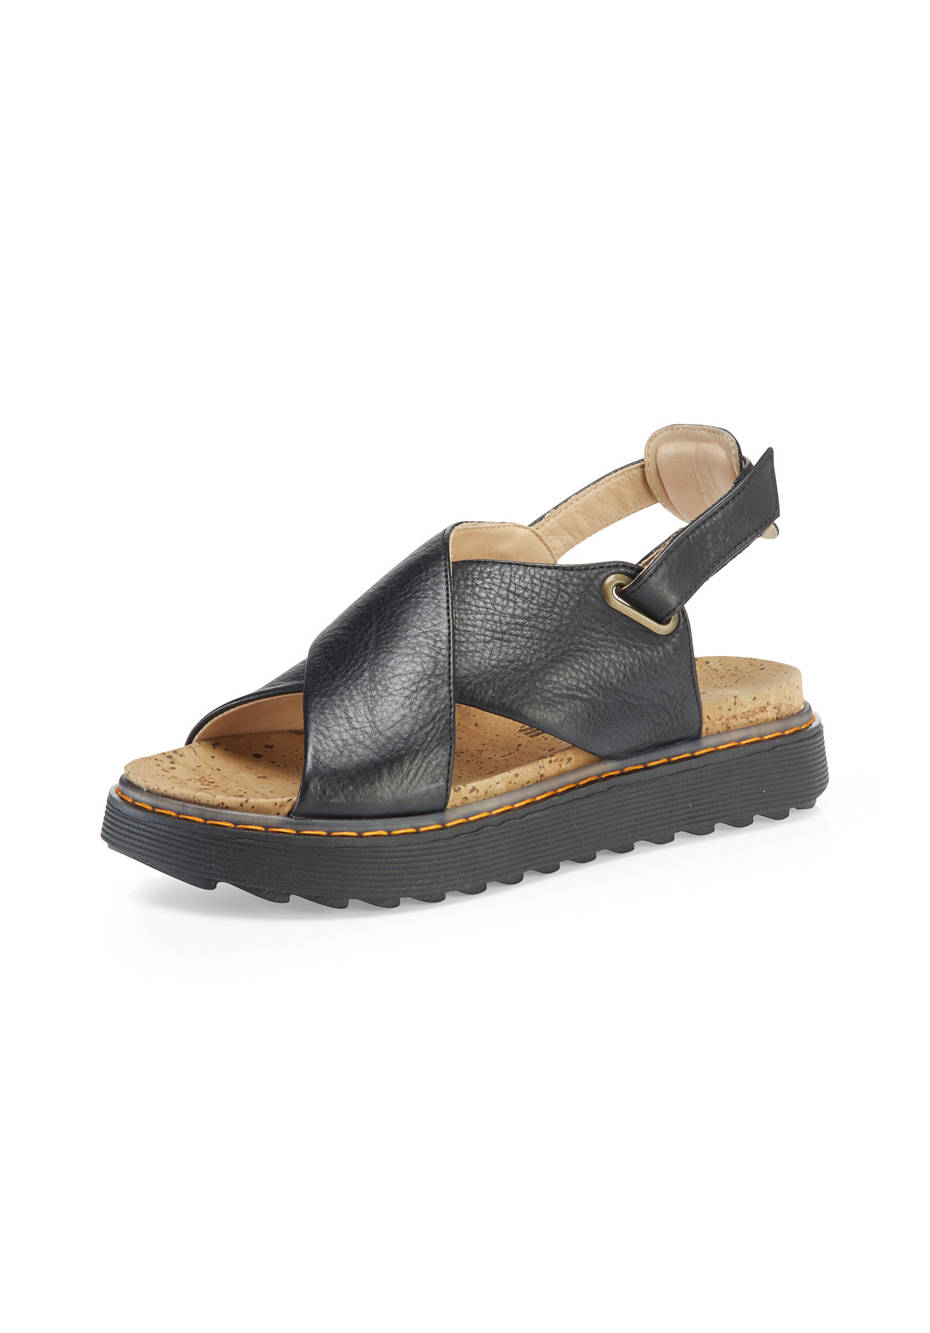 Platform sandals made from chrome-free tanned leather